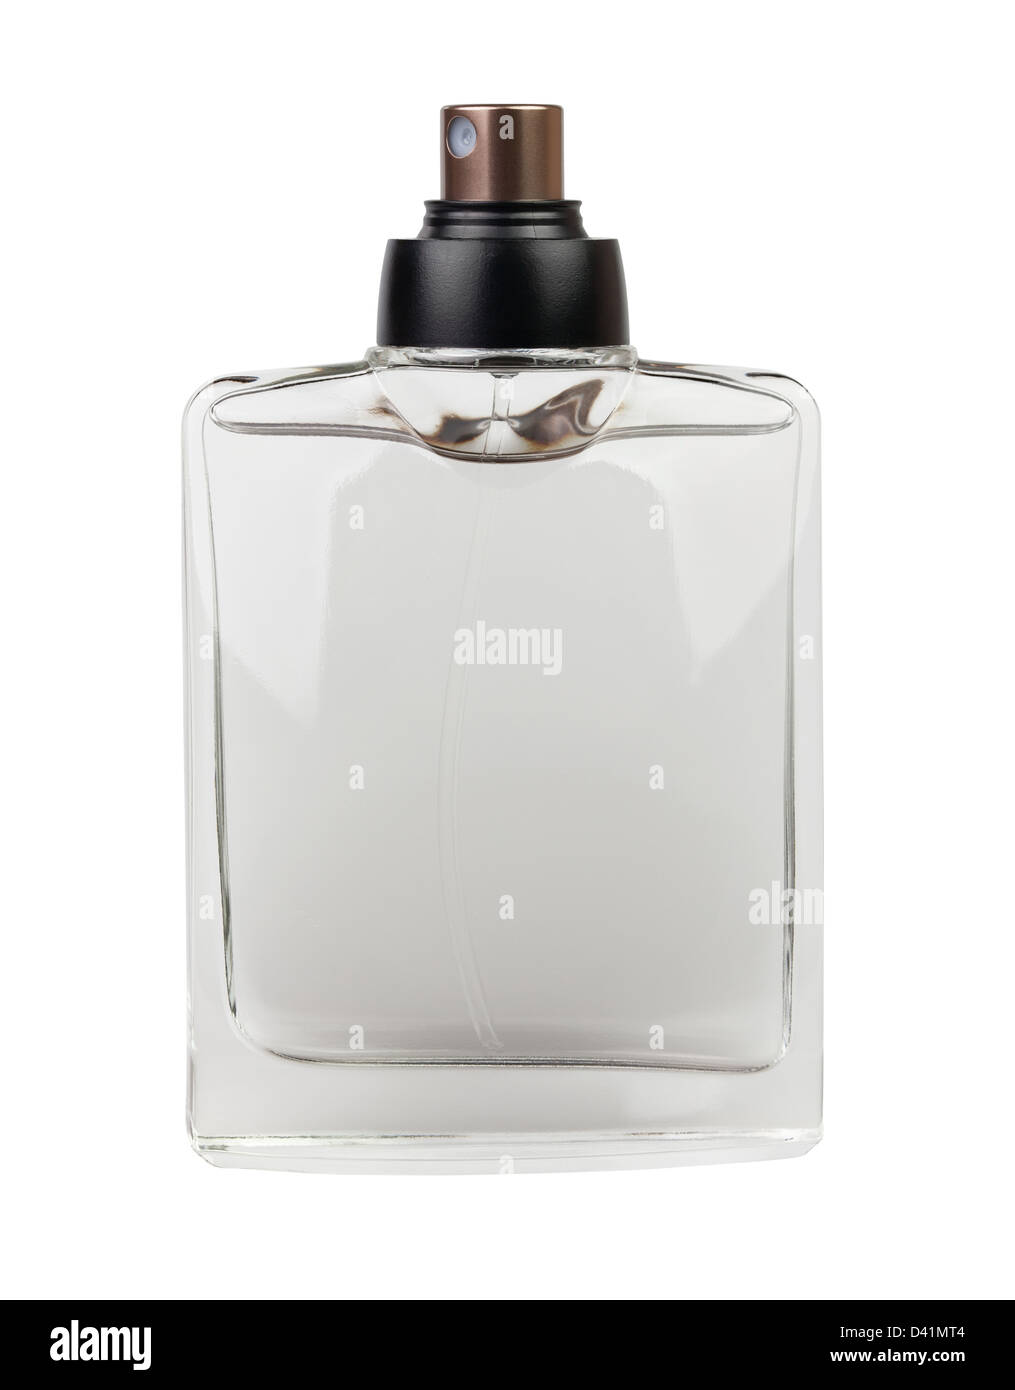 perfume bottle on white background - Stock Image